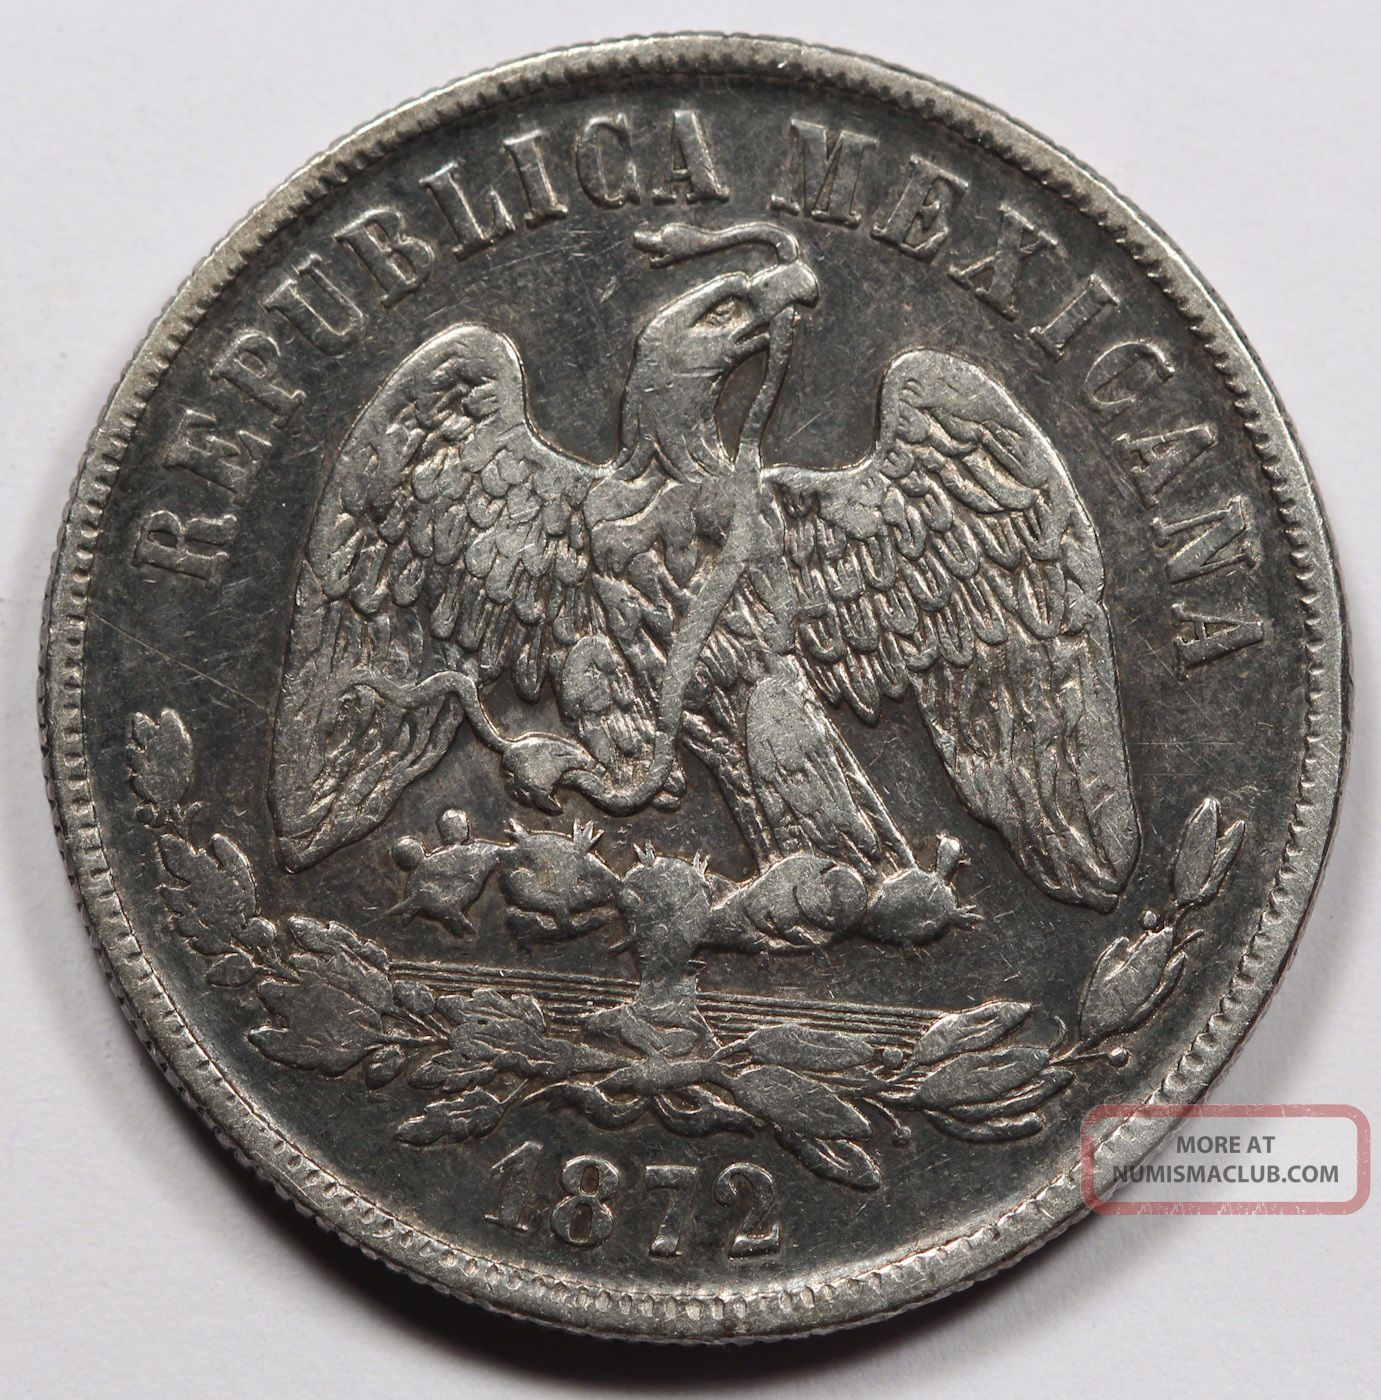 Mexico 1872 Republic Mo M 1 Un Peso Silver Coin Xf Darkly